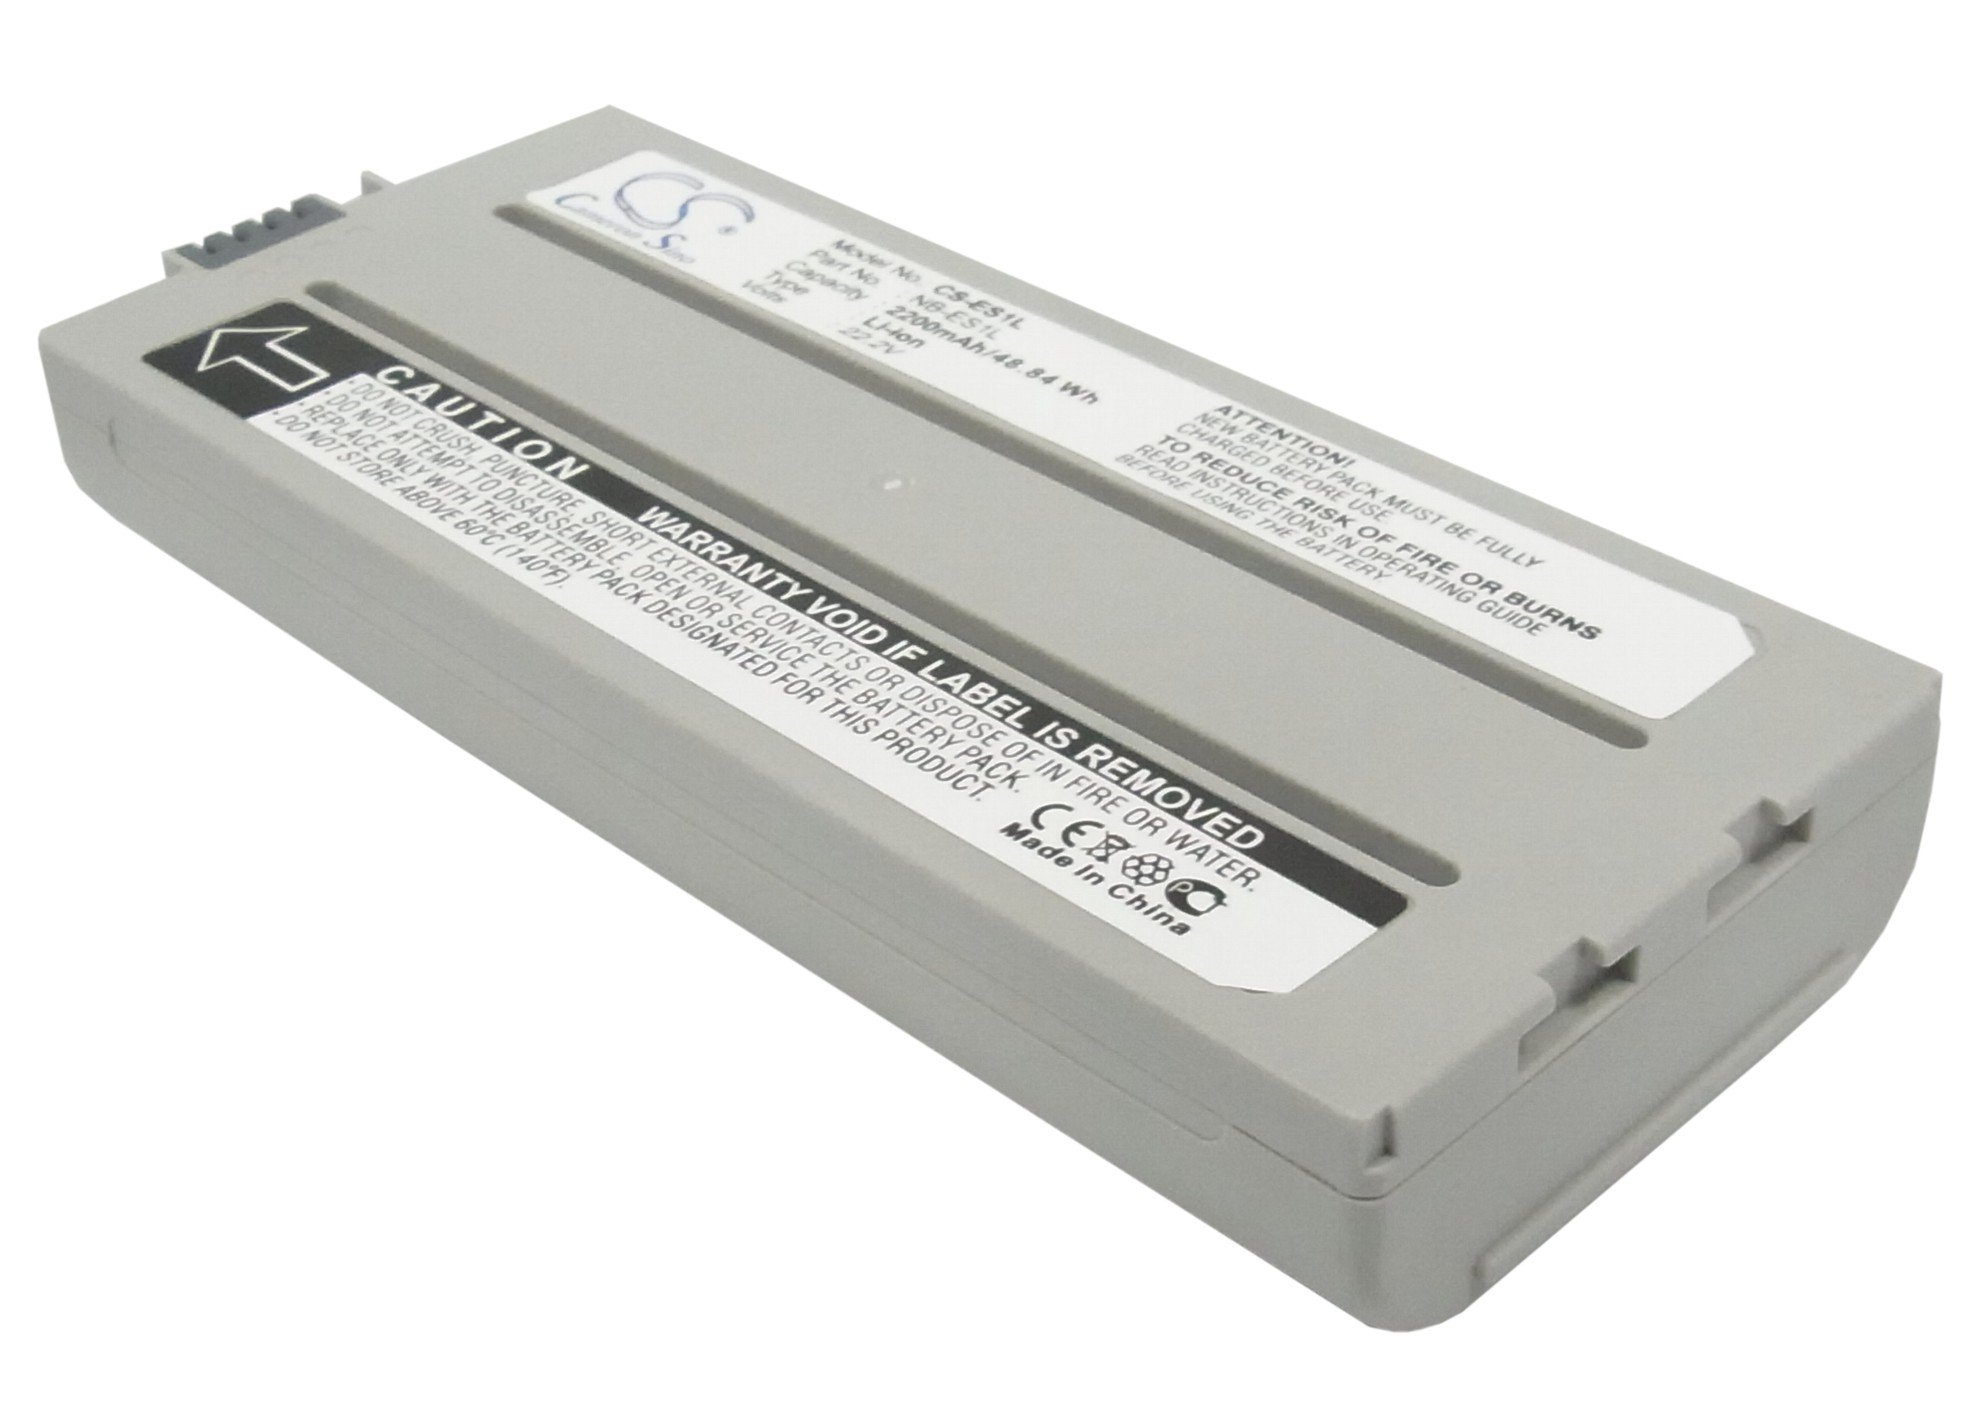 vintrons 2200mAh Battery For Canon Selphy ES2 Compact Photo Printer / 22.2V,